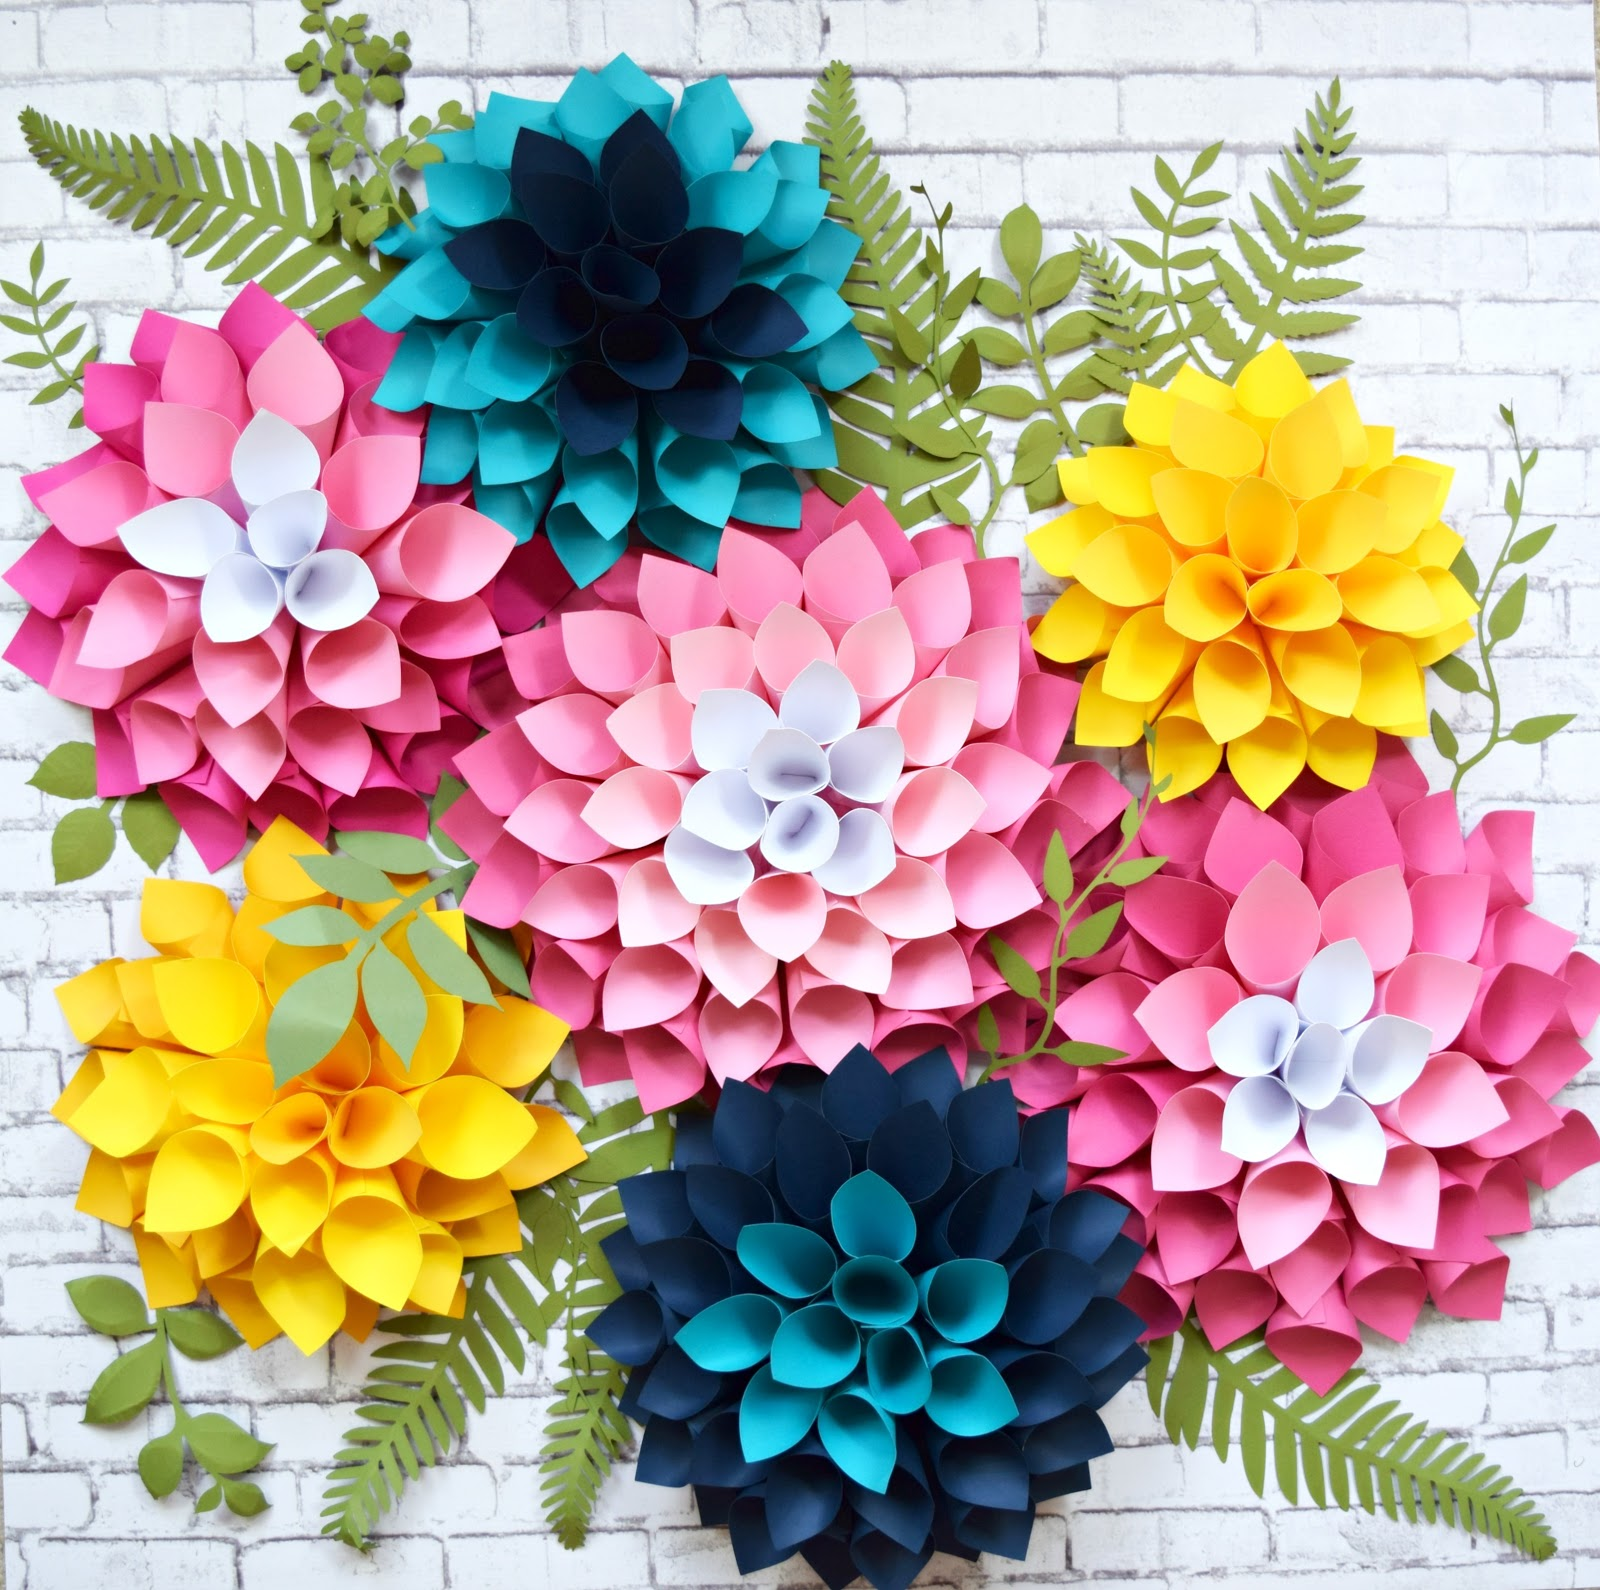 DIY Giant Dahlia Paper Flowers: How to Make Large Paper ...